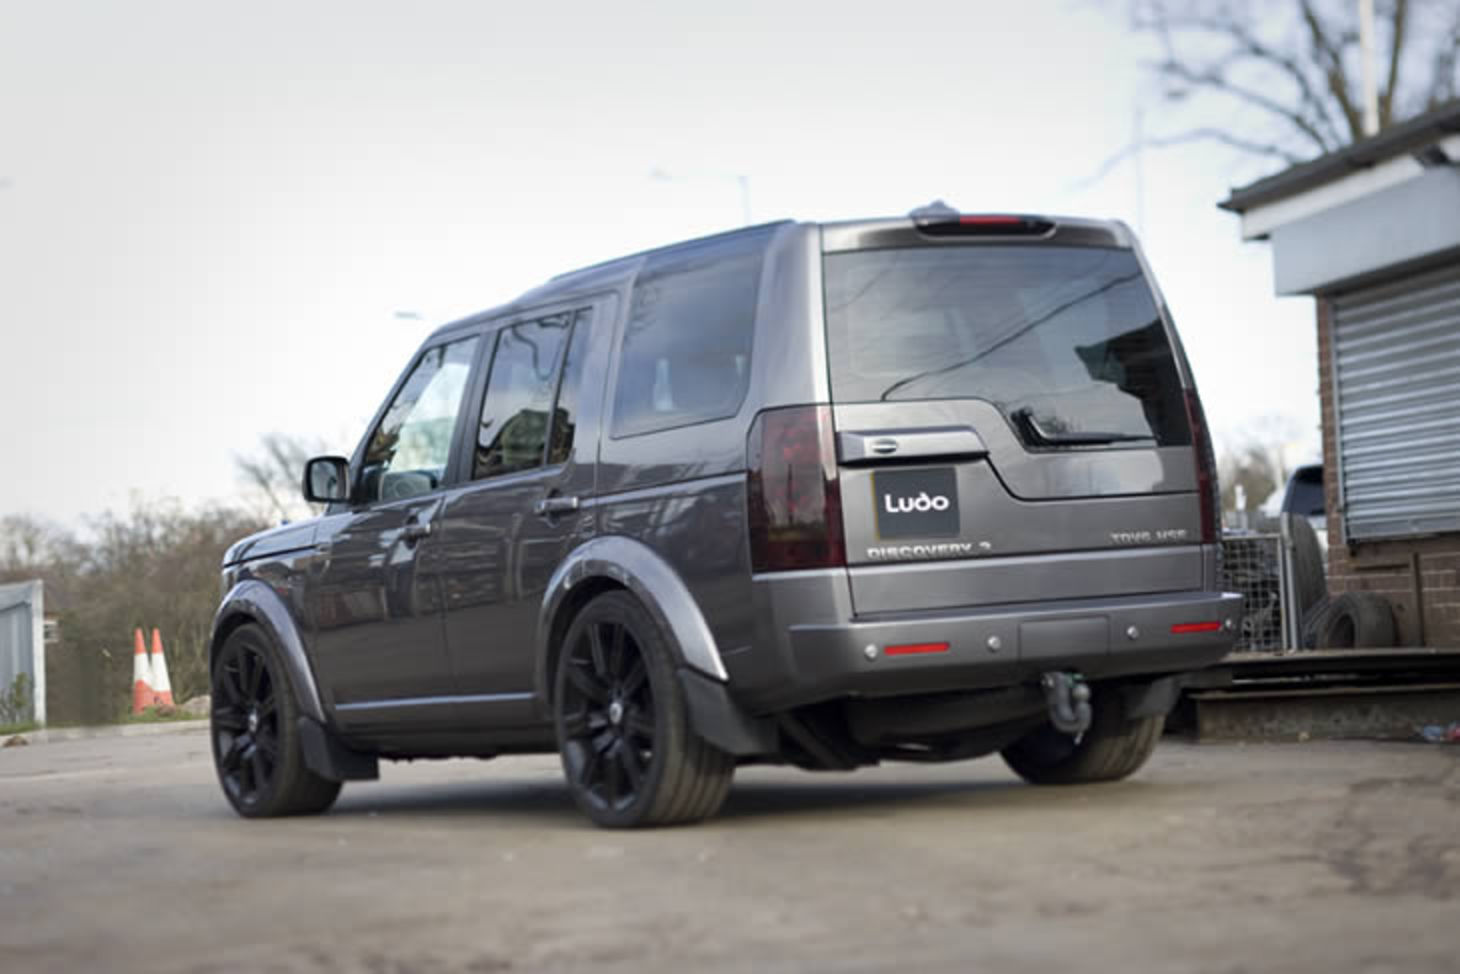 topworldauto photos of land rover discovery 3 hse. Black Bedroom Furniture Sets. Home Design Ideas